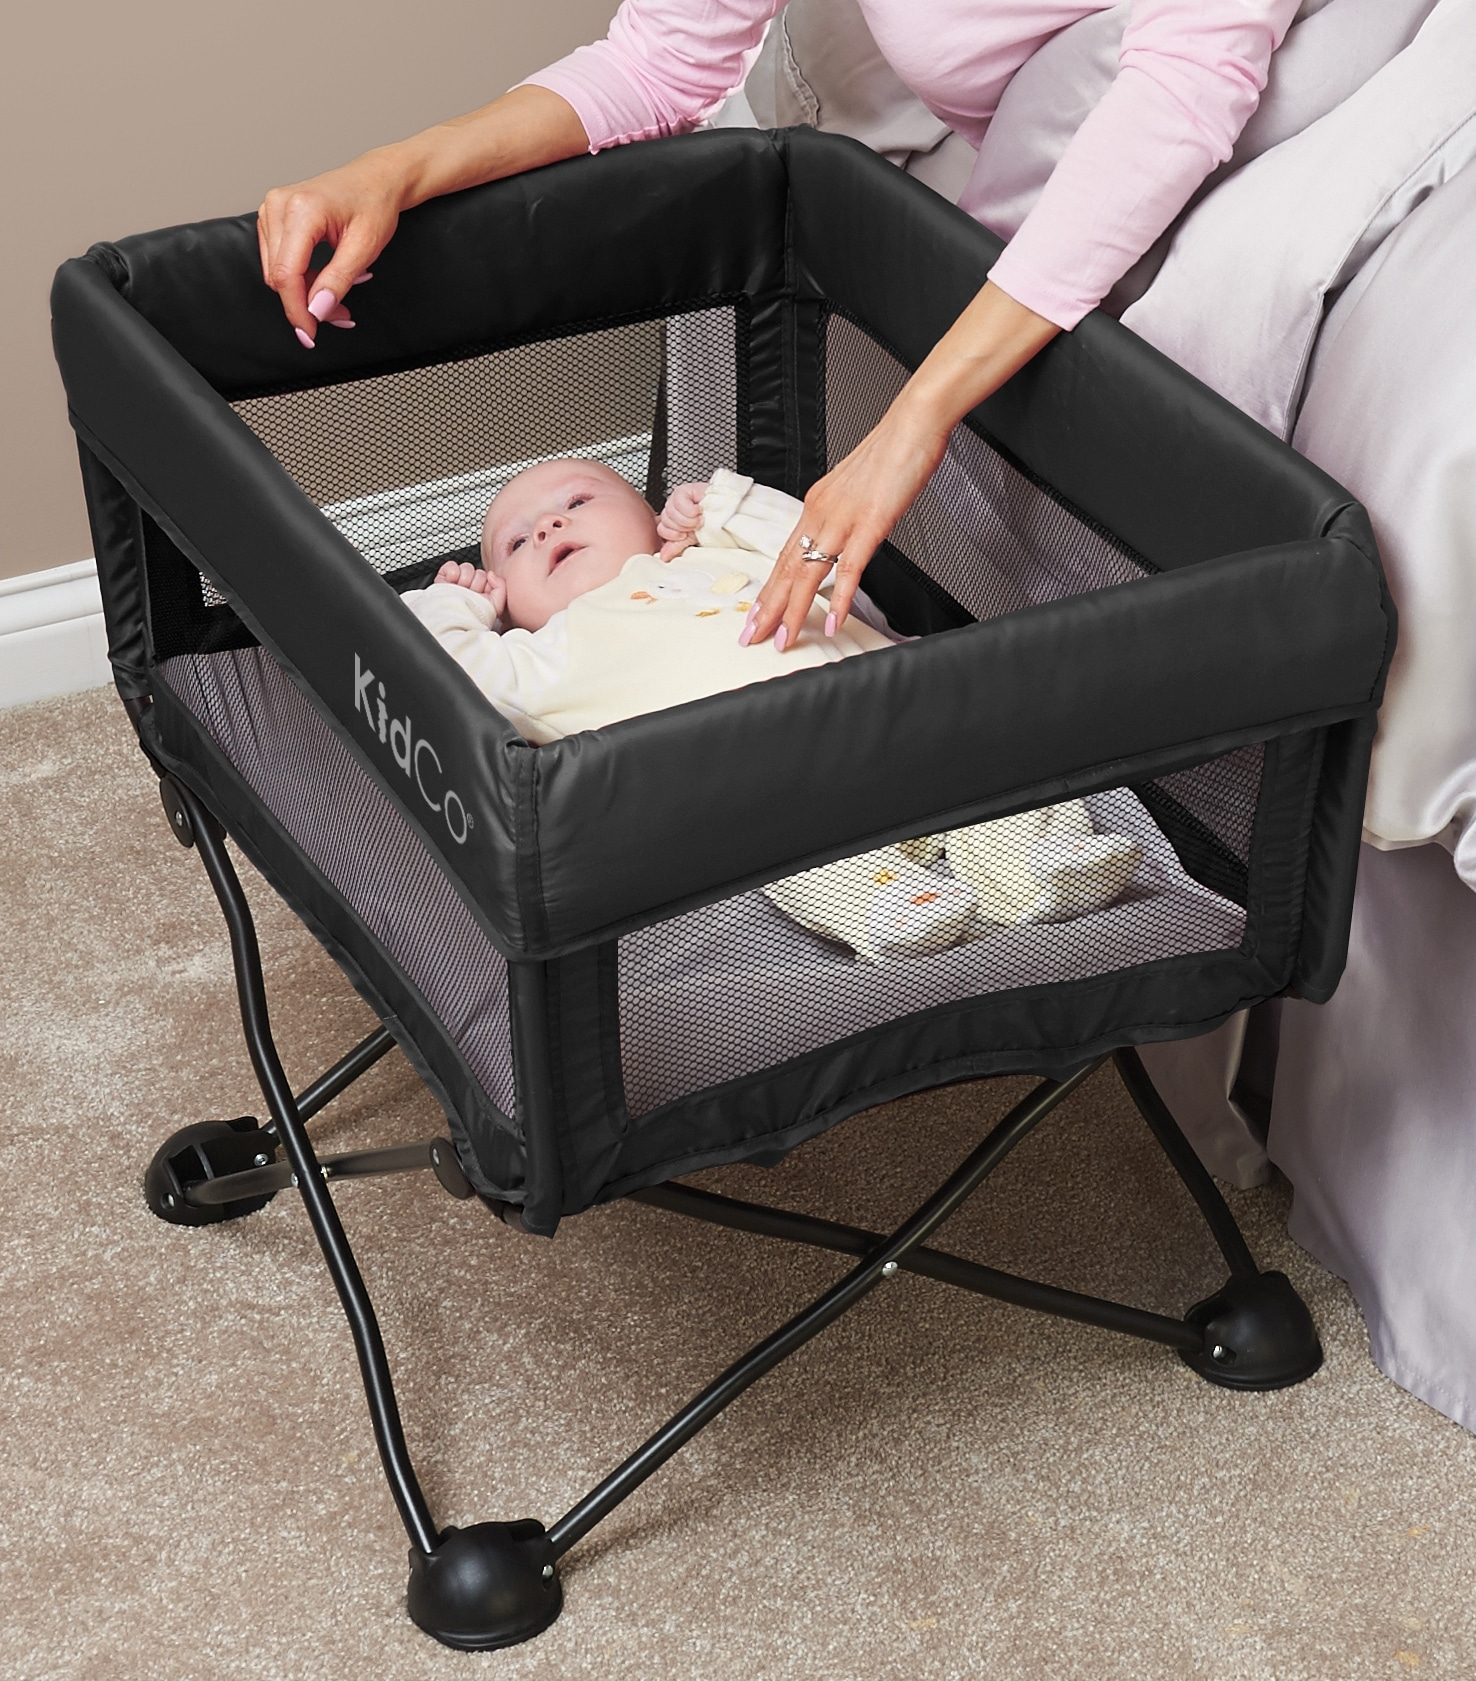 Baby Bassinet For Bed Dreampod Travel Bassinet